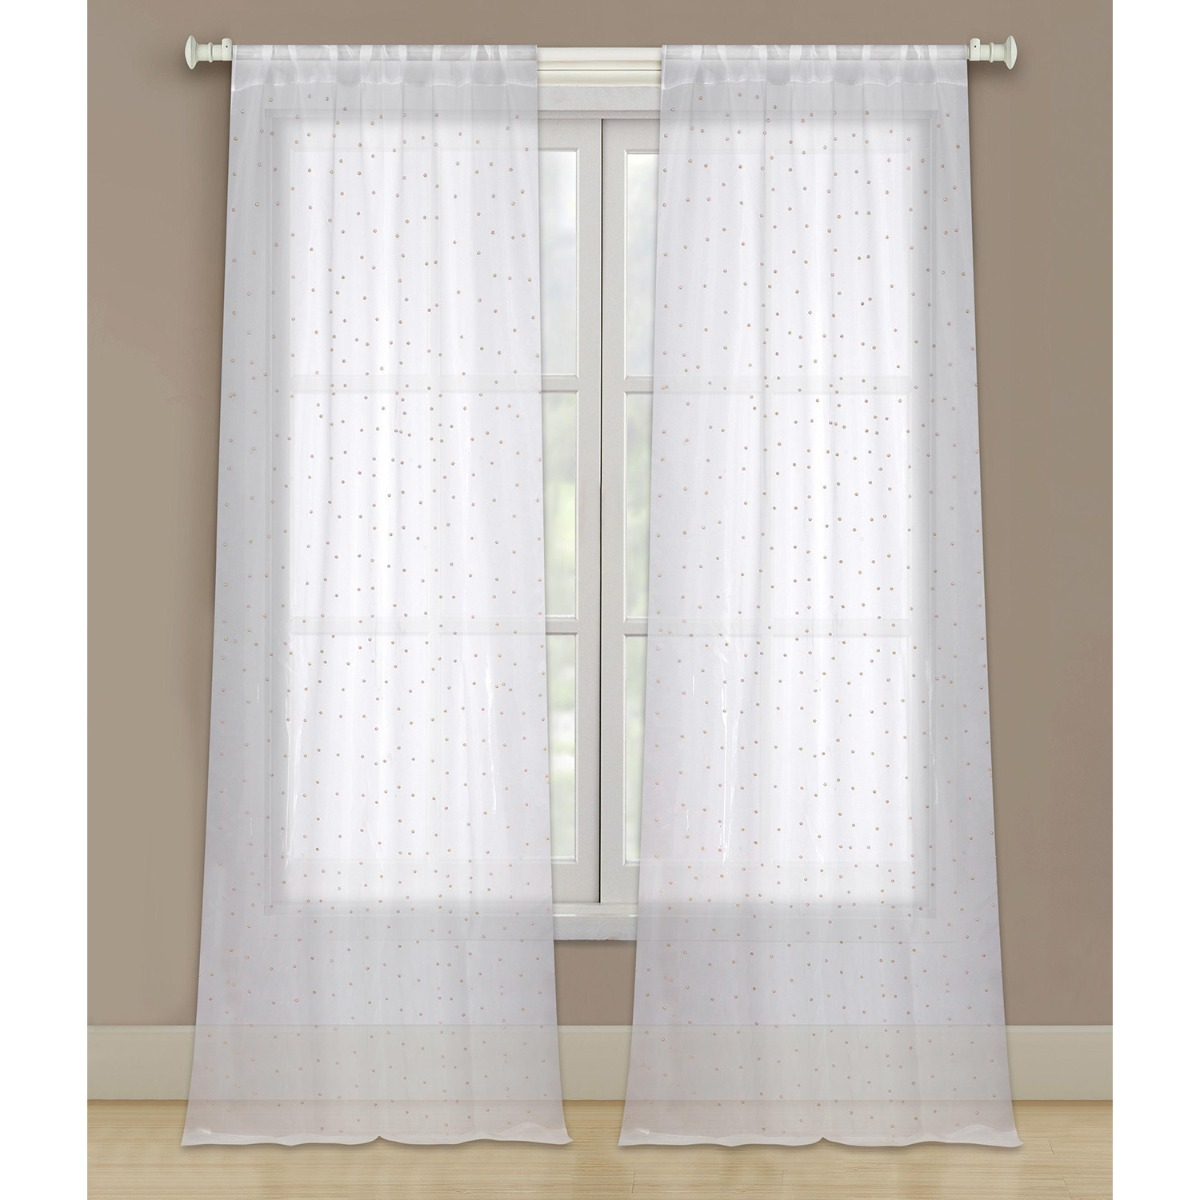 96 Sheer 2 Panel Window Curtains Rod Pocket Drapes For Bedroom Living Room And Dining Room White With Gold Beads Walmart Com Walmart Com